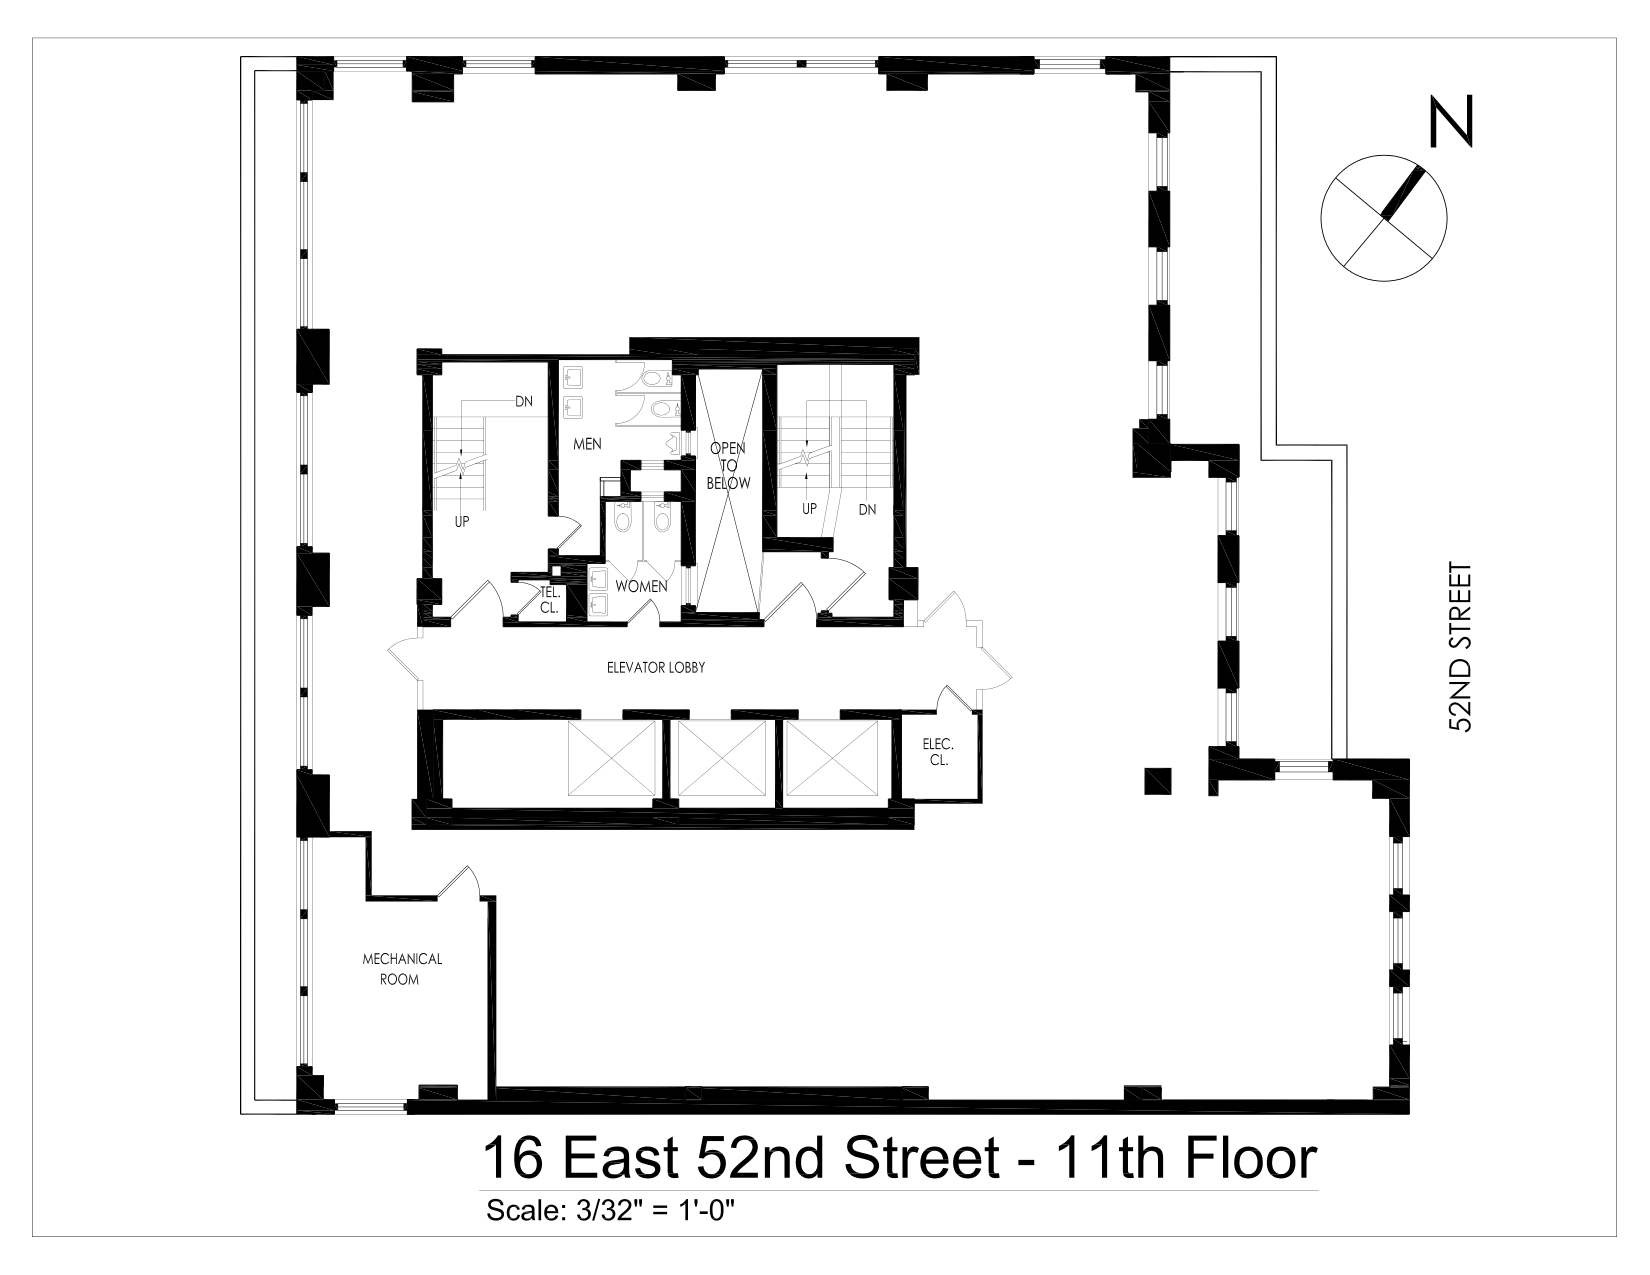 16 east 52nd street 11th floor vts for 11th floor